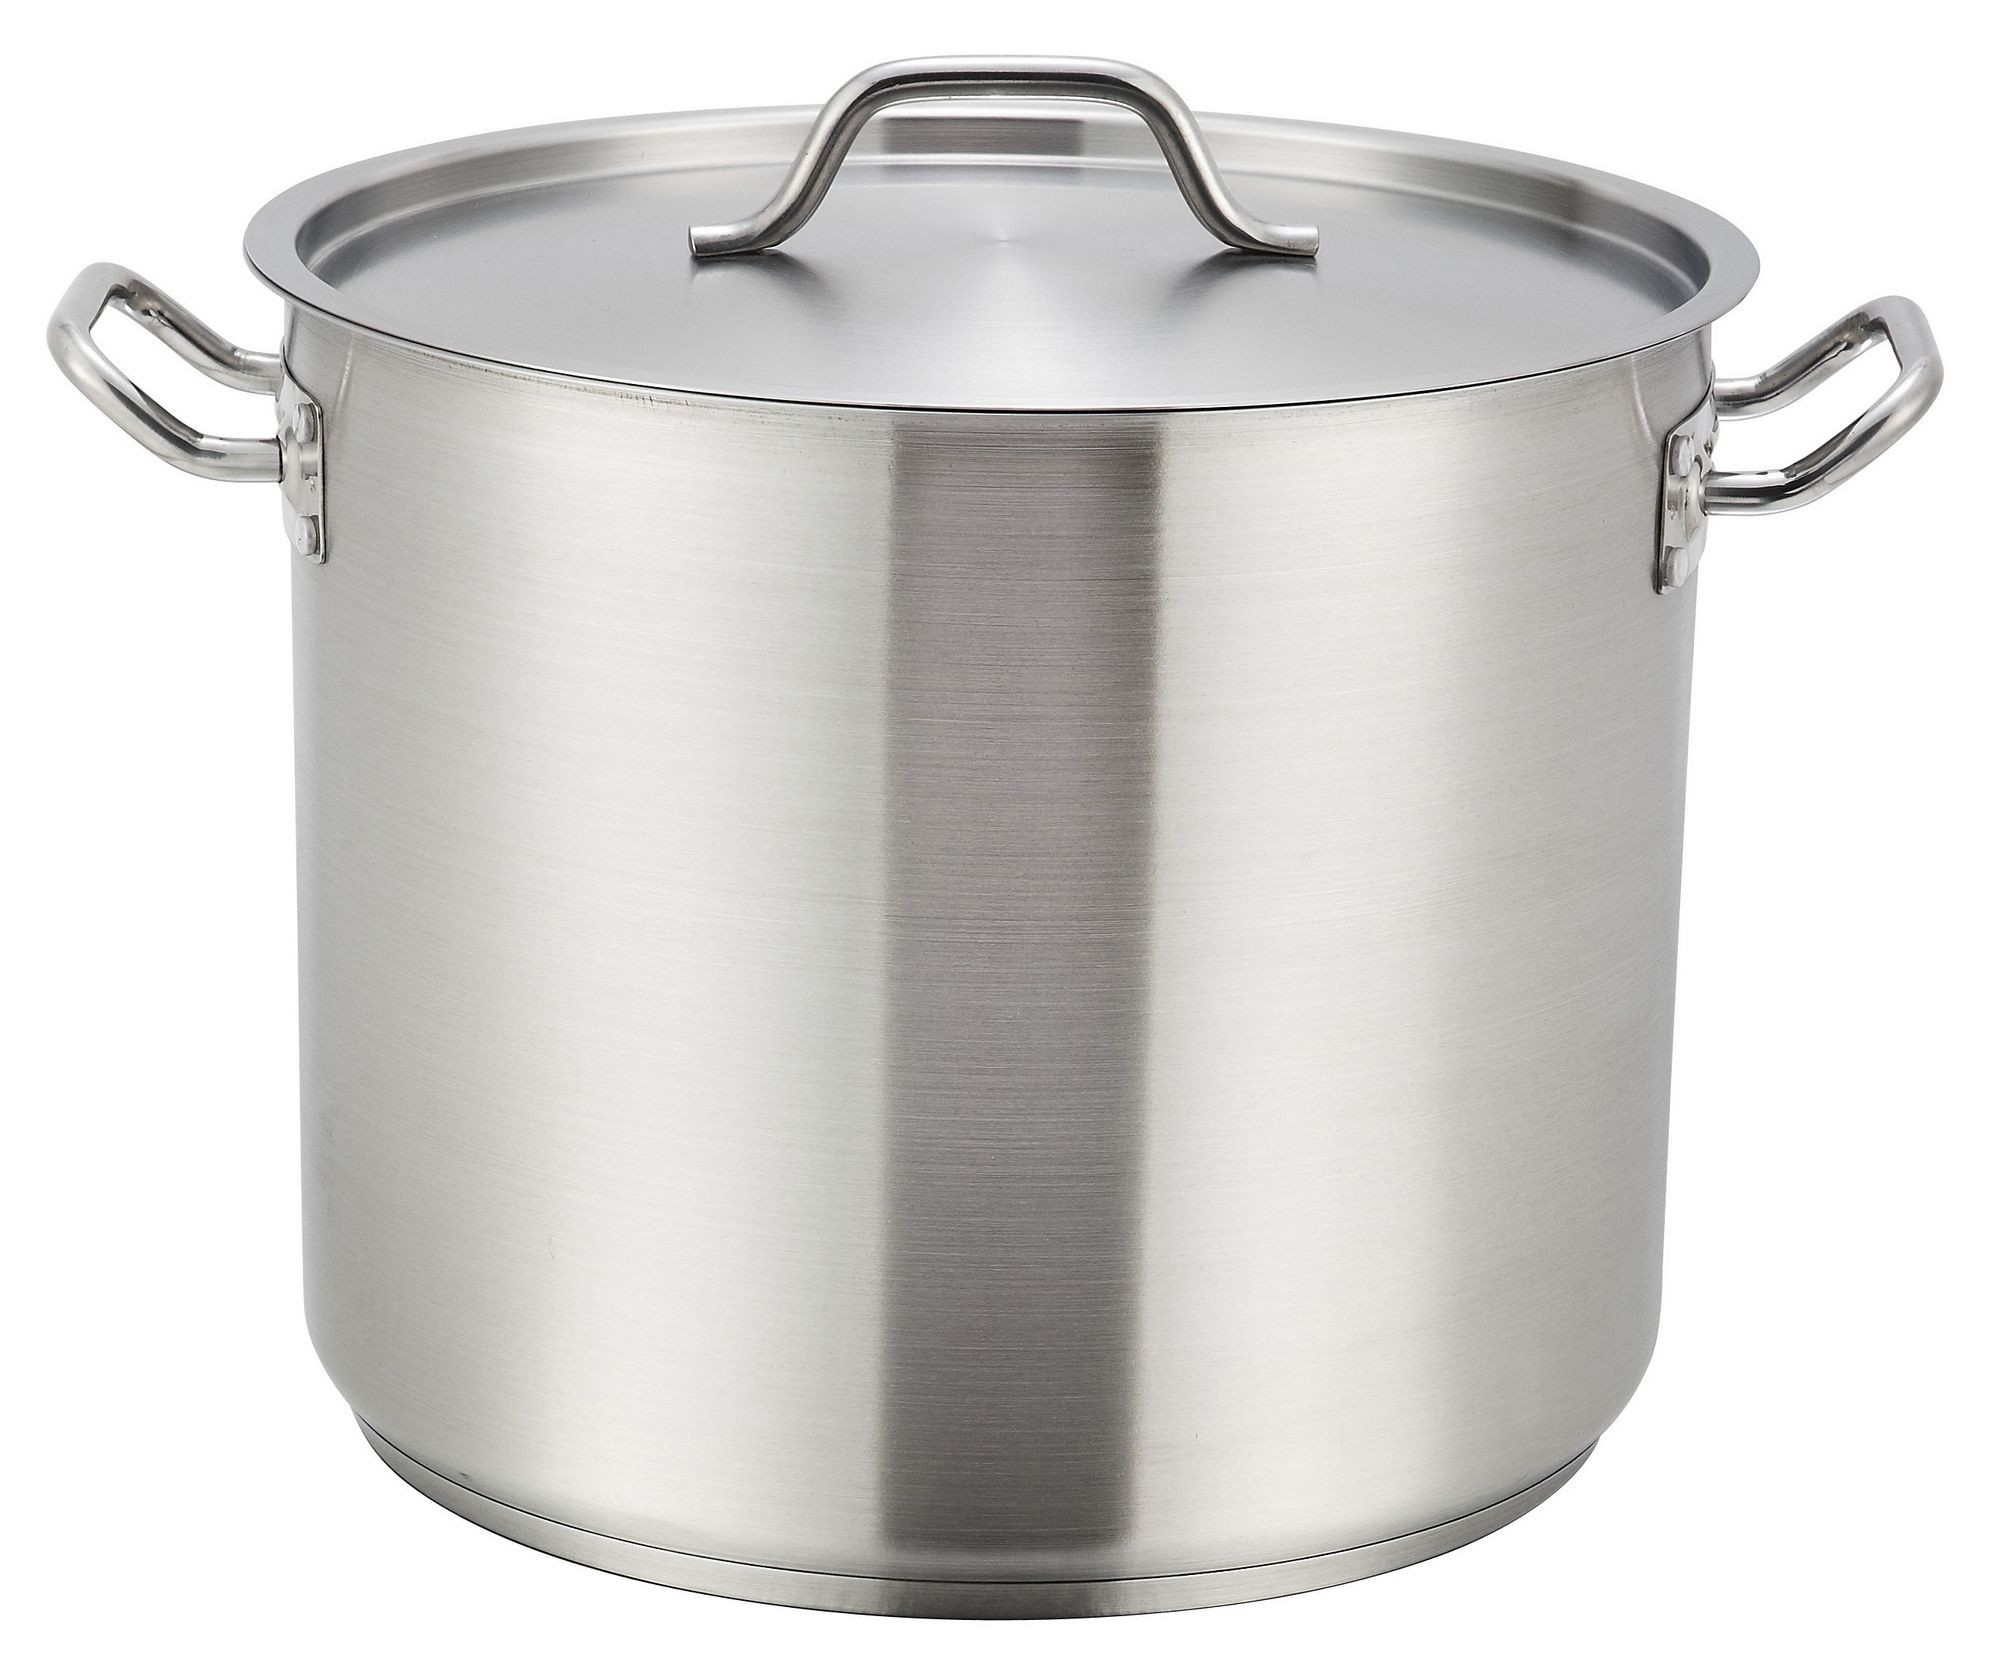 Winco SST-16 Premium Induction Stainless Steel 16 Qt. Stock Pot